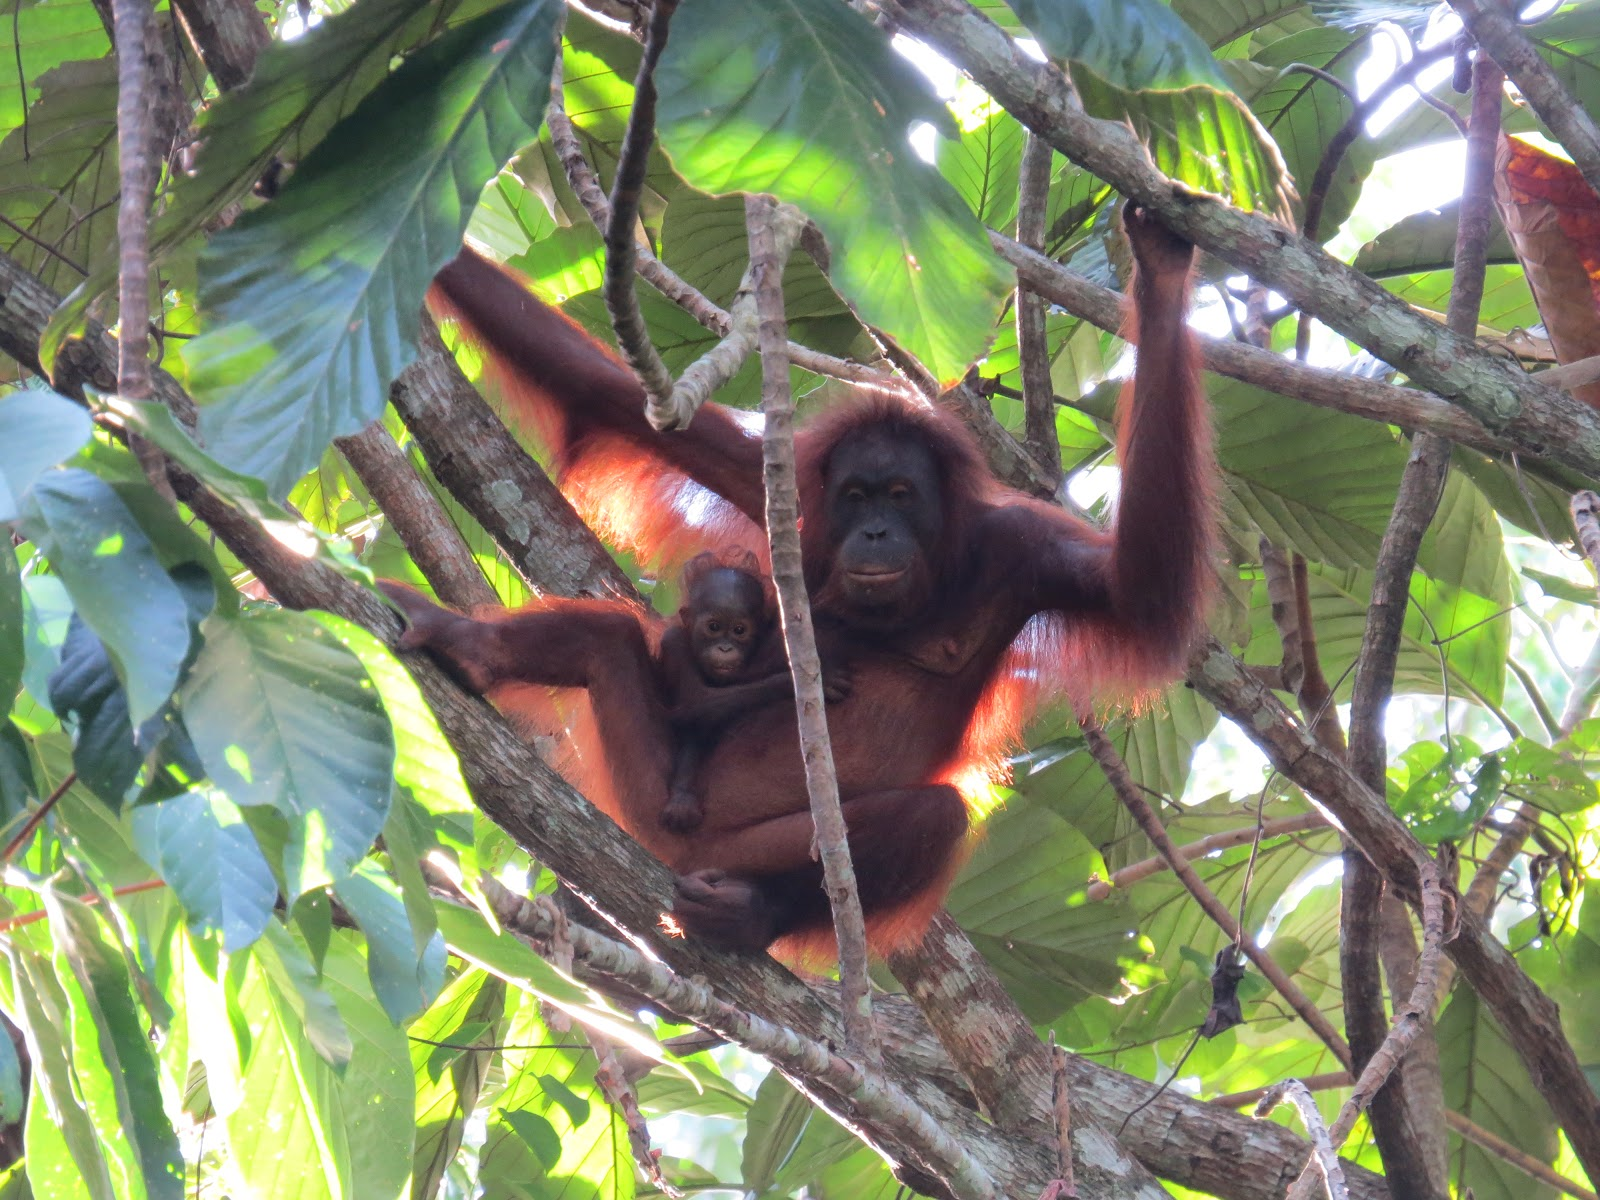 Out on a limb: Unlikely collaboration boosts orangutans in Borneo